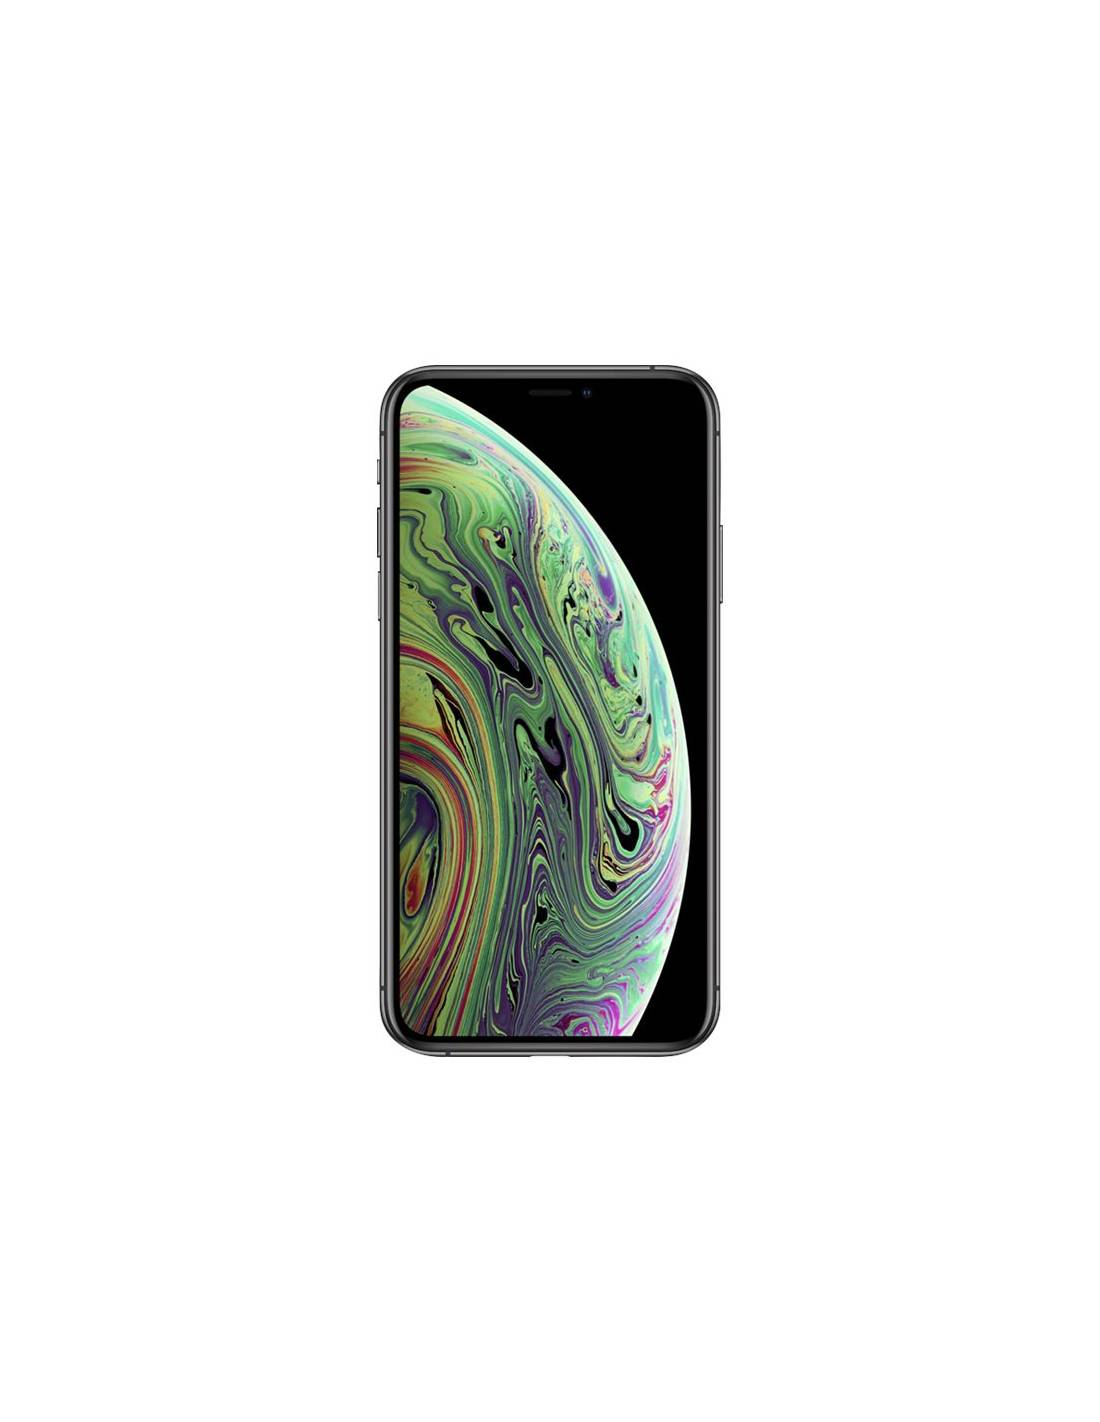 IPhone XS space gray 512GB